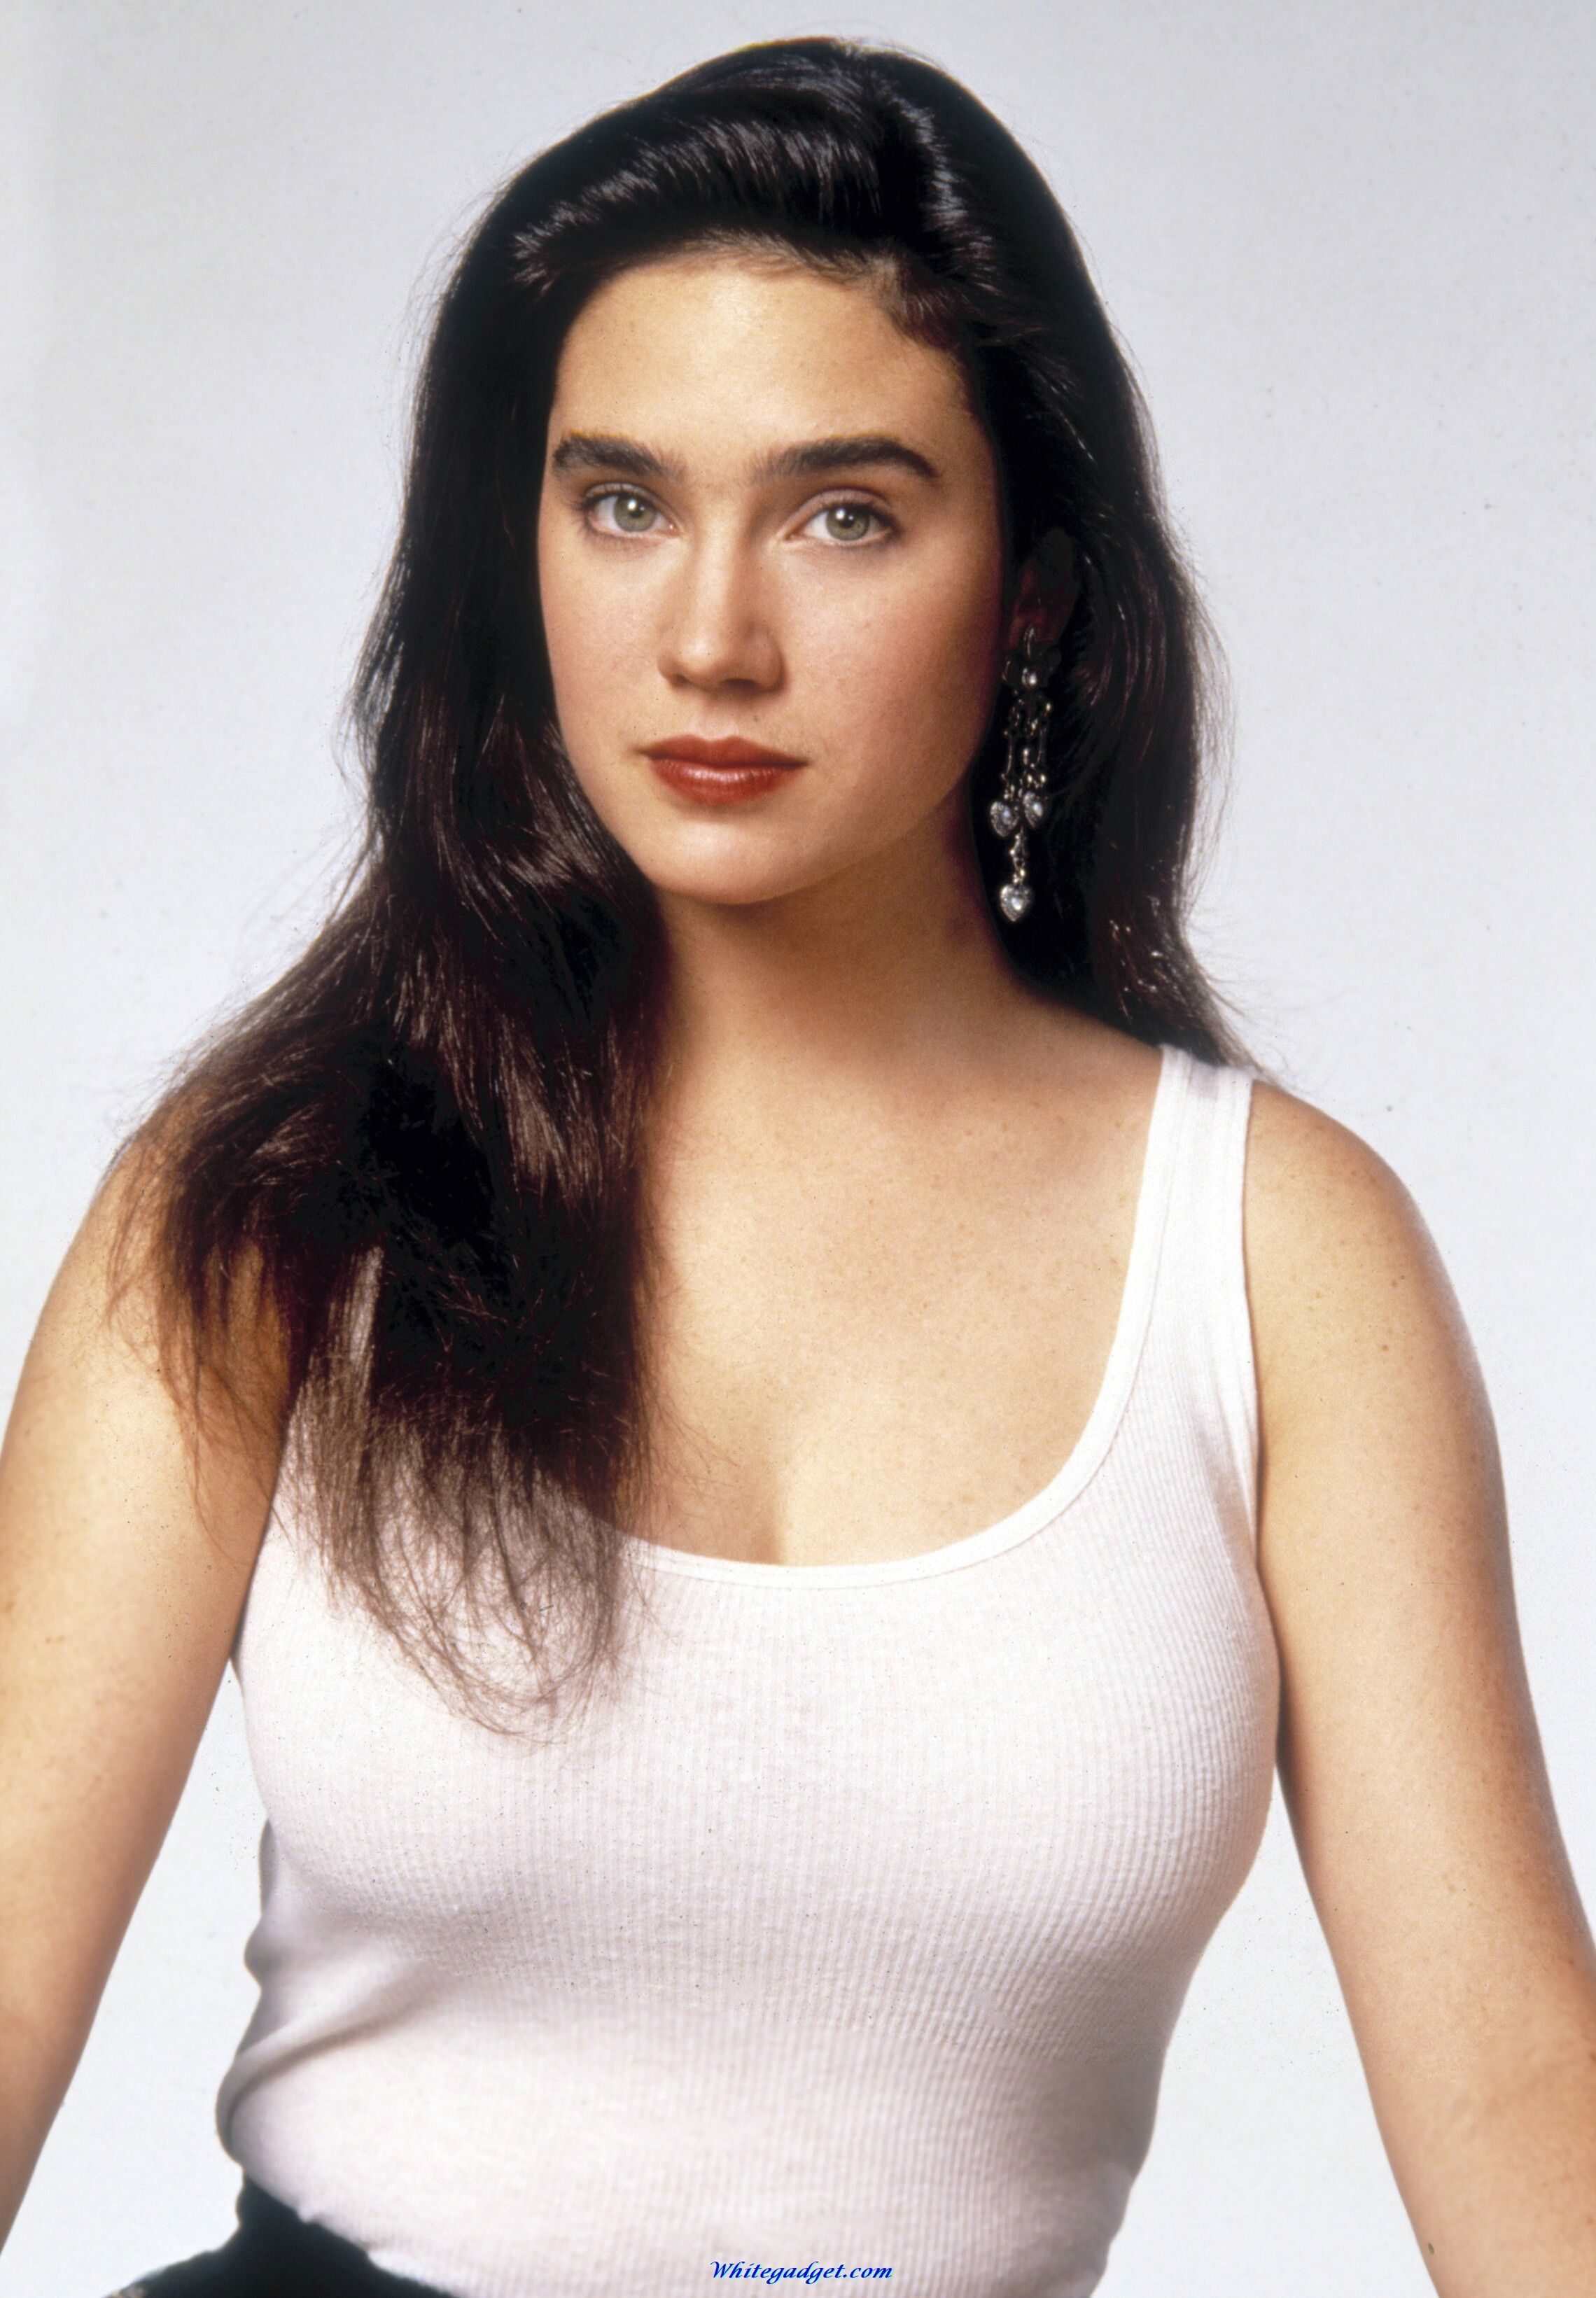 jennifer connelly вк